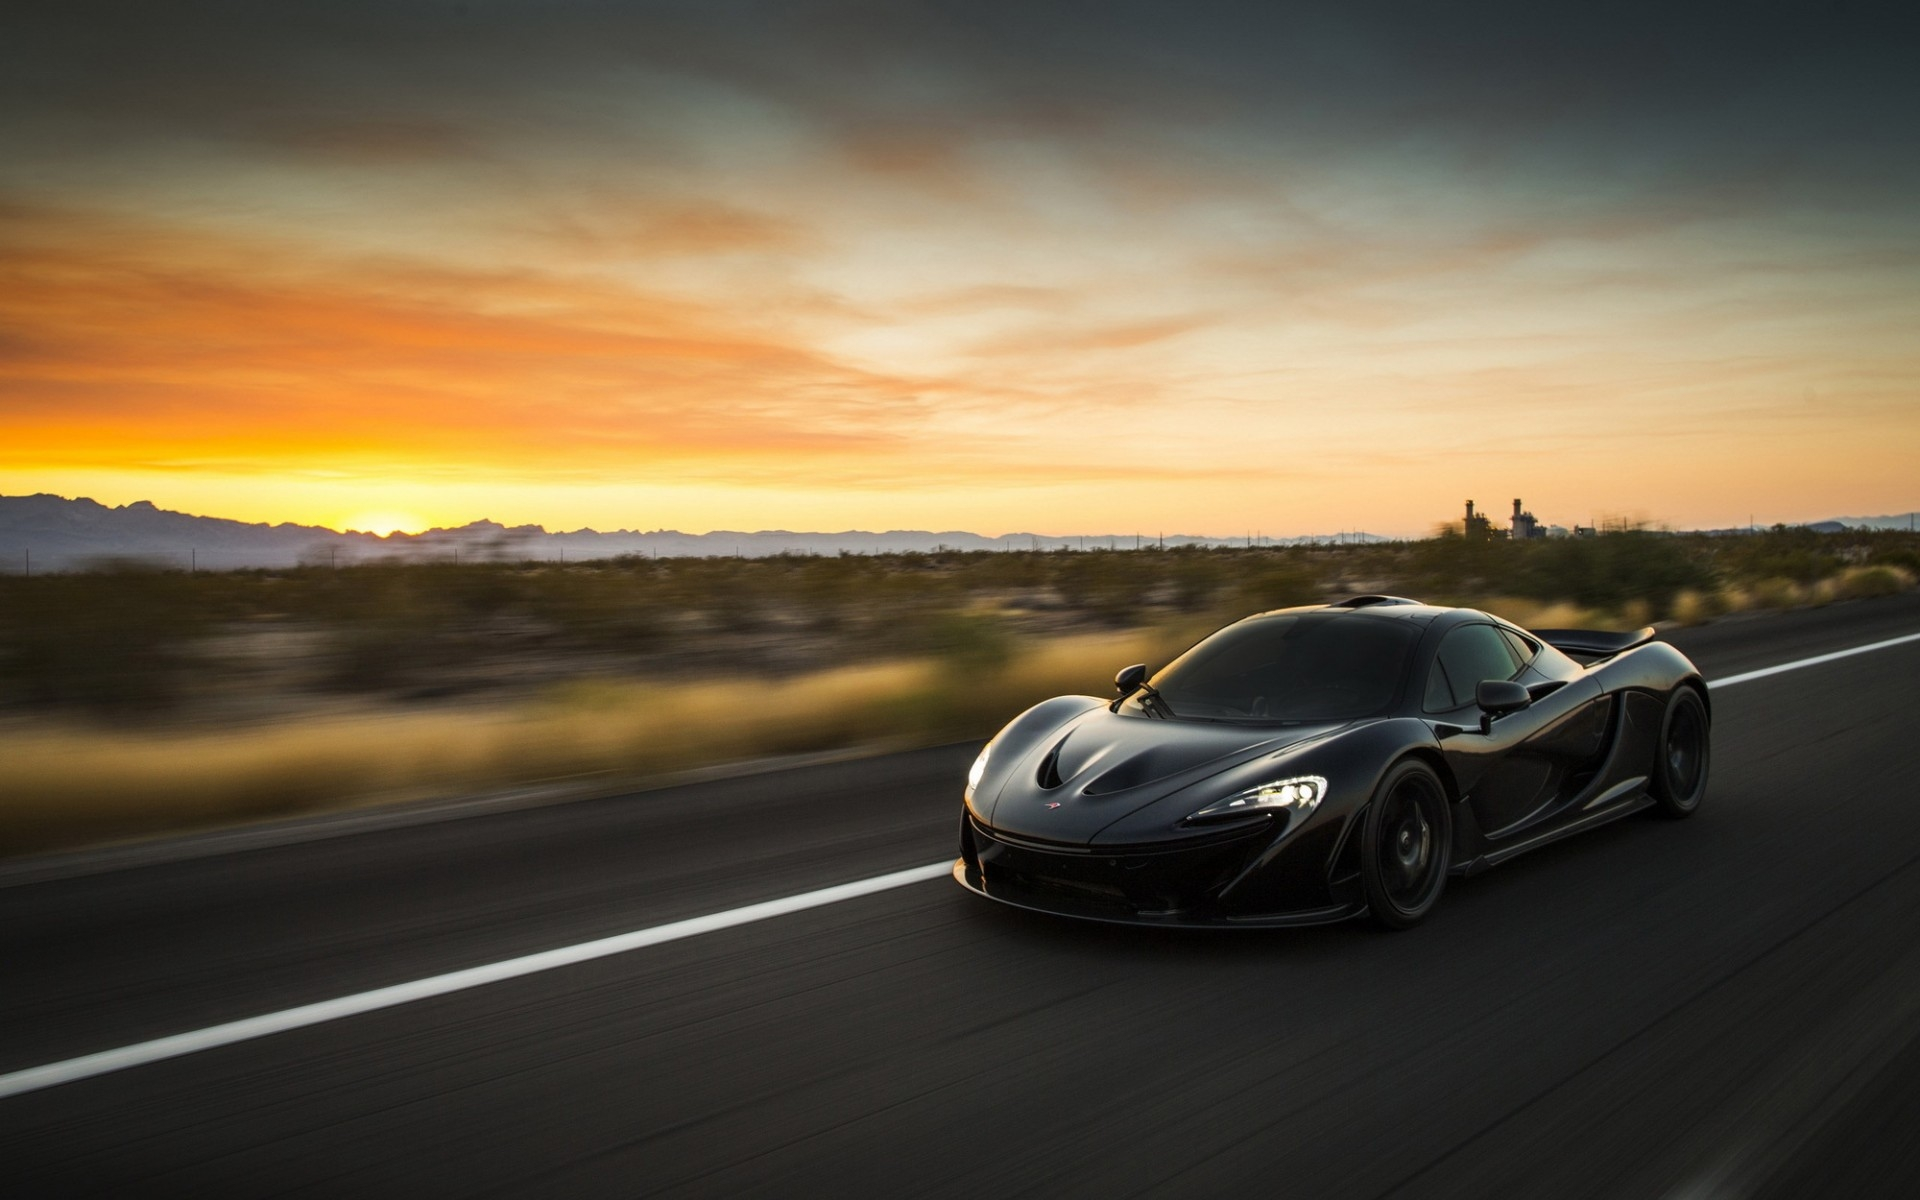 Mclaren P1 Desktop Wallpaper